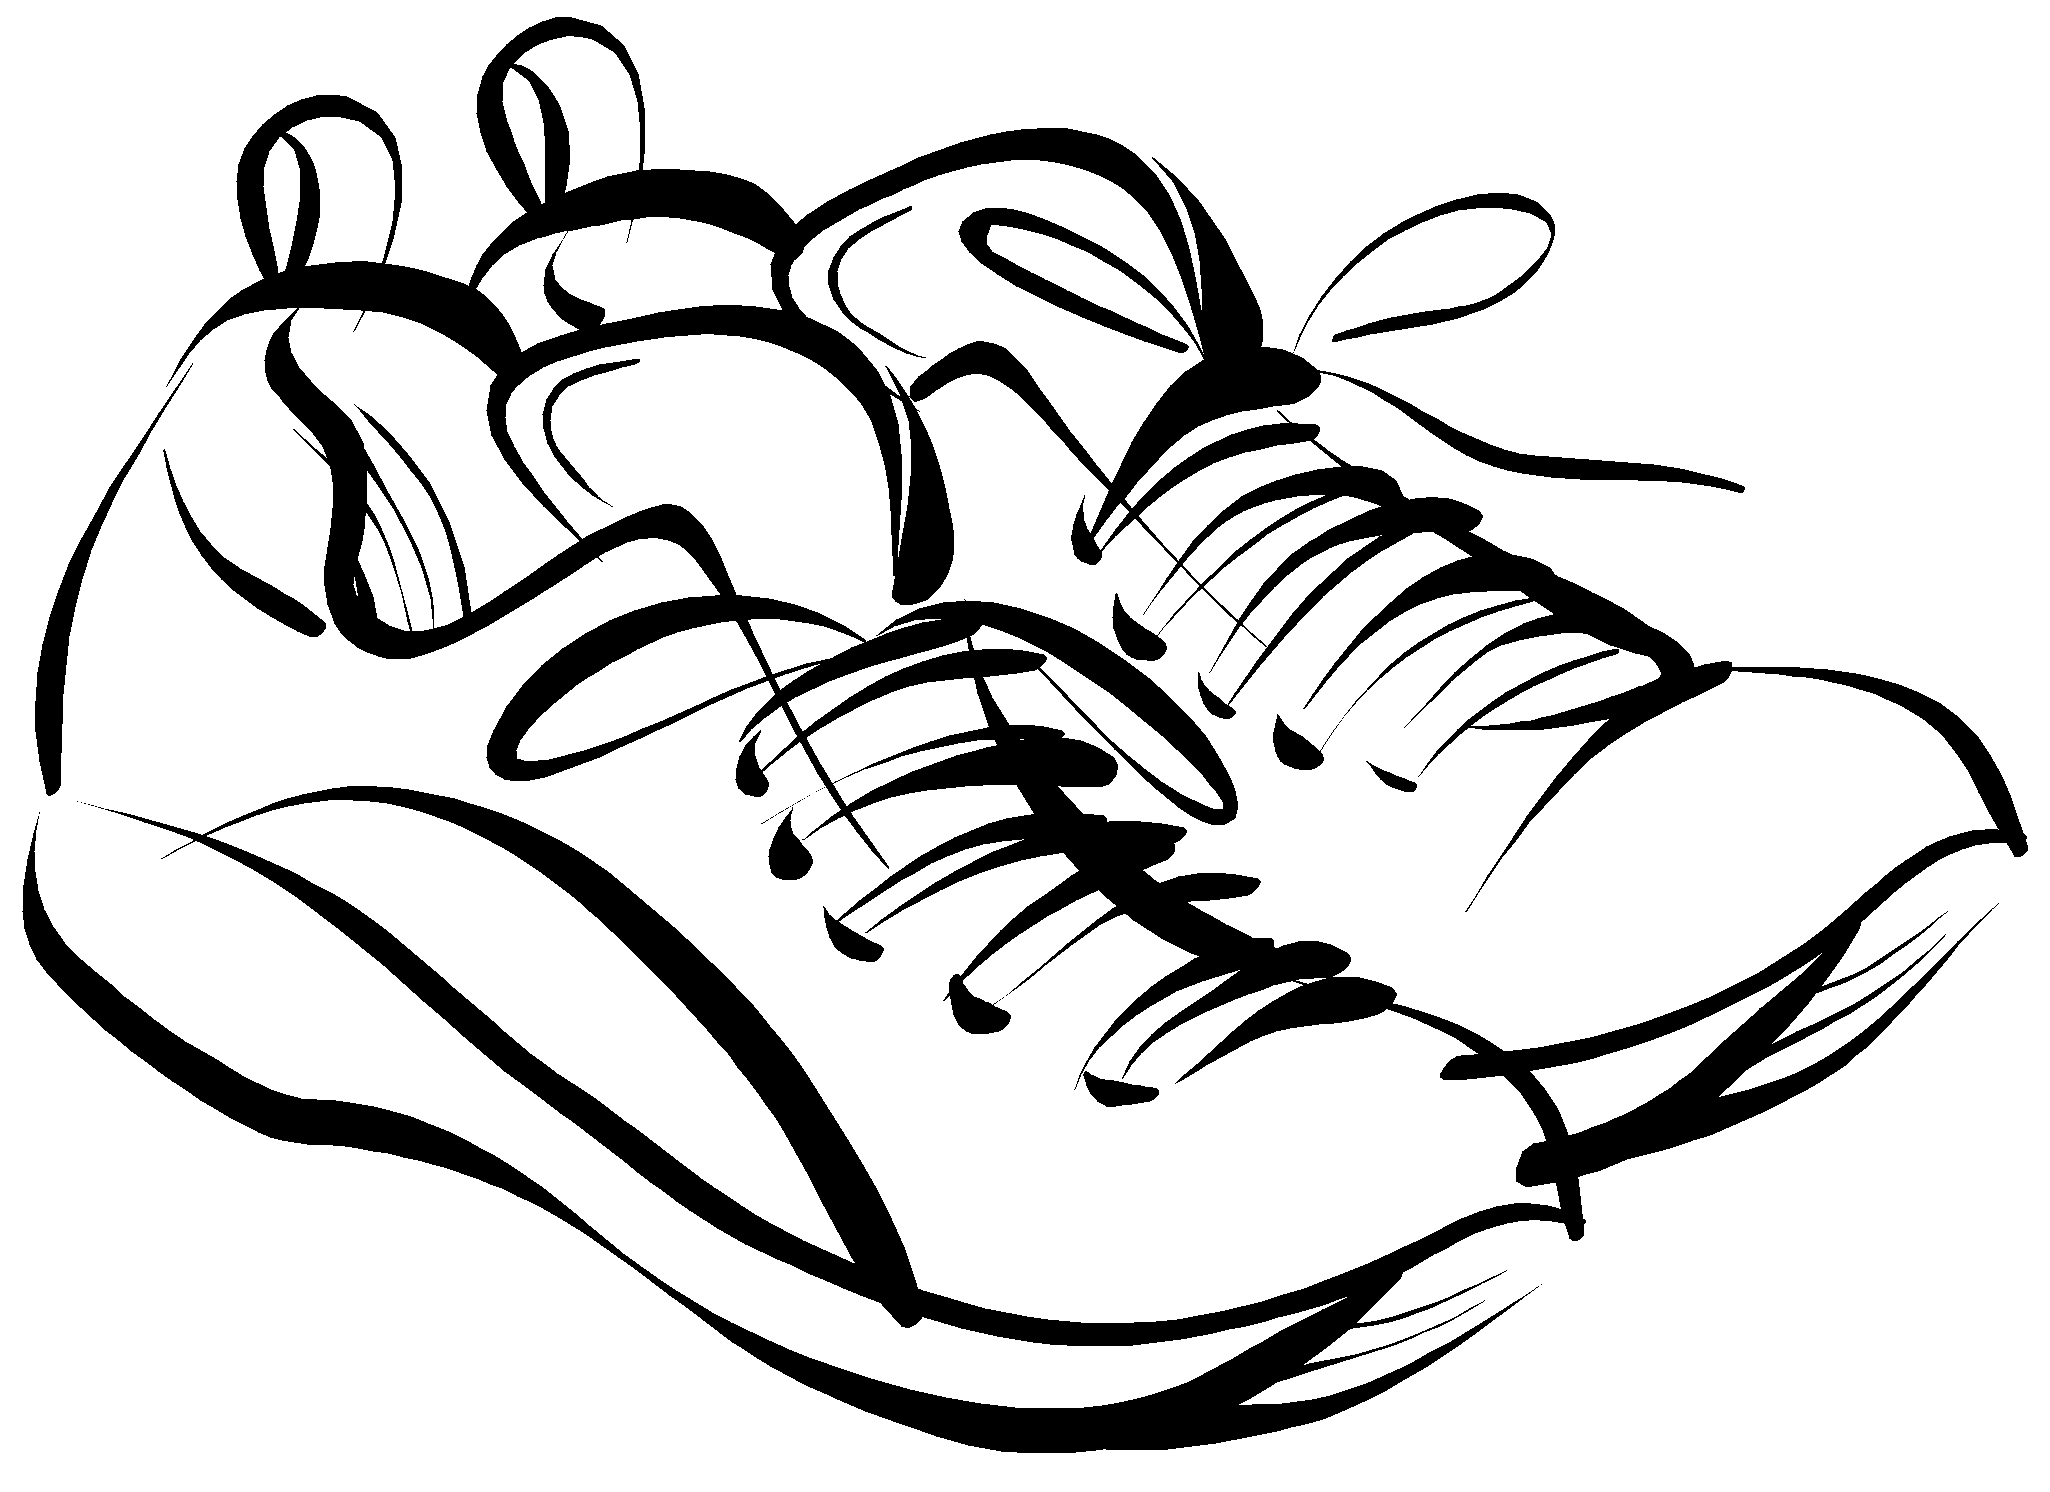 png library library Tennis shoes clipart black and white. Gym sport shoe free.